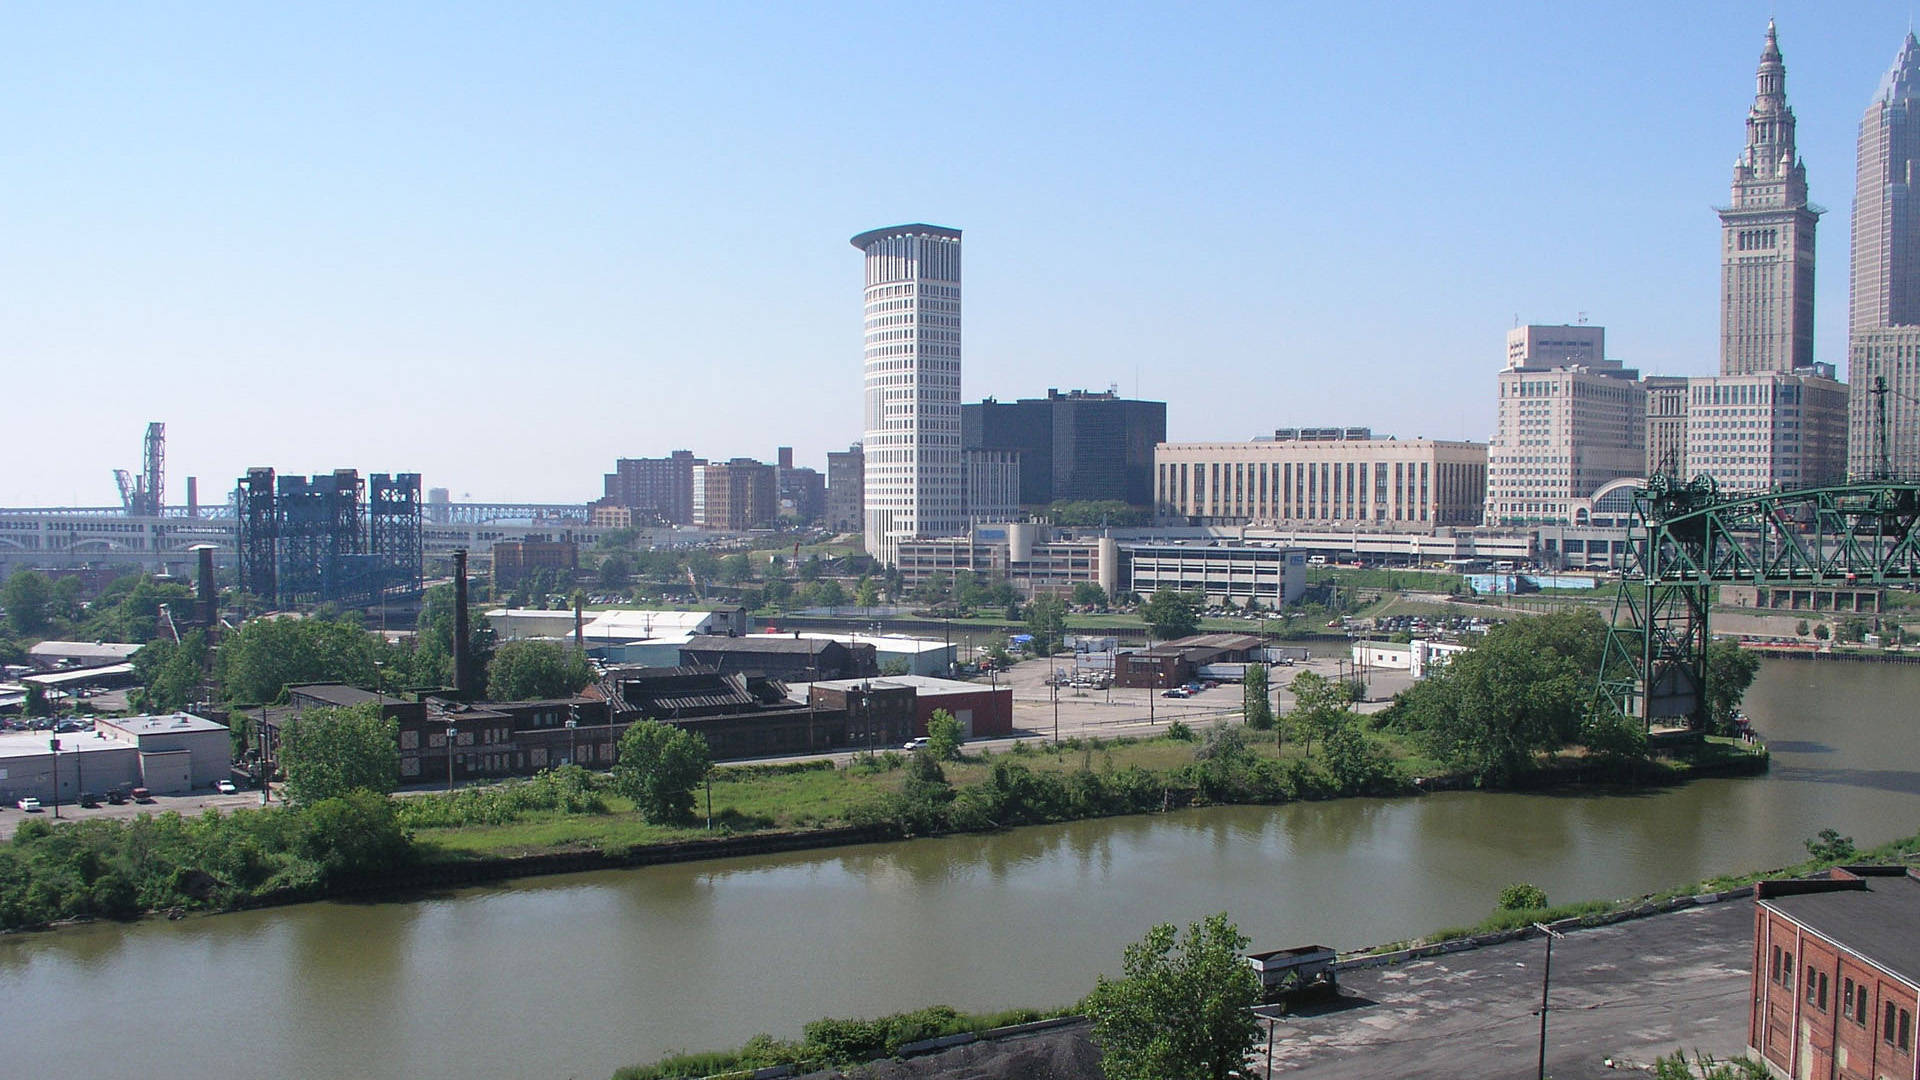 downtown cleveland ohio wallpaper - photo #25